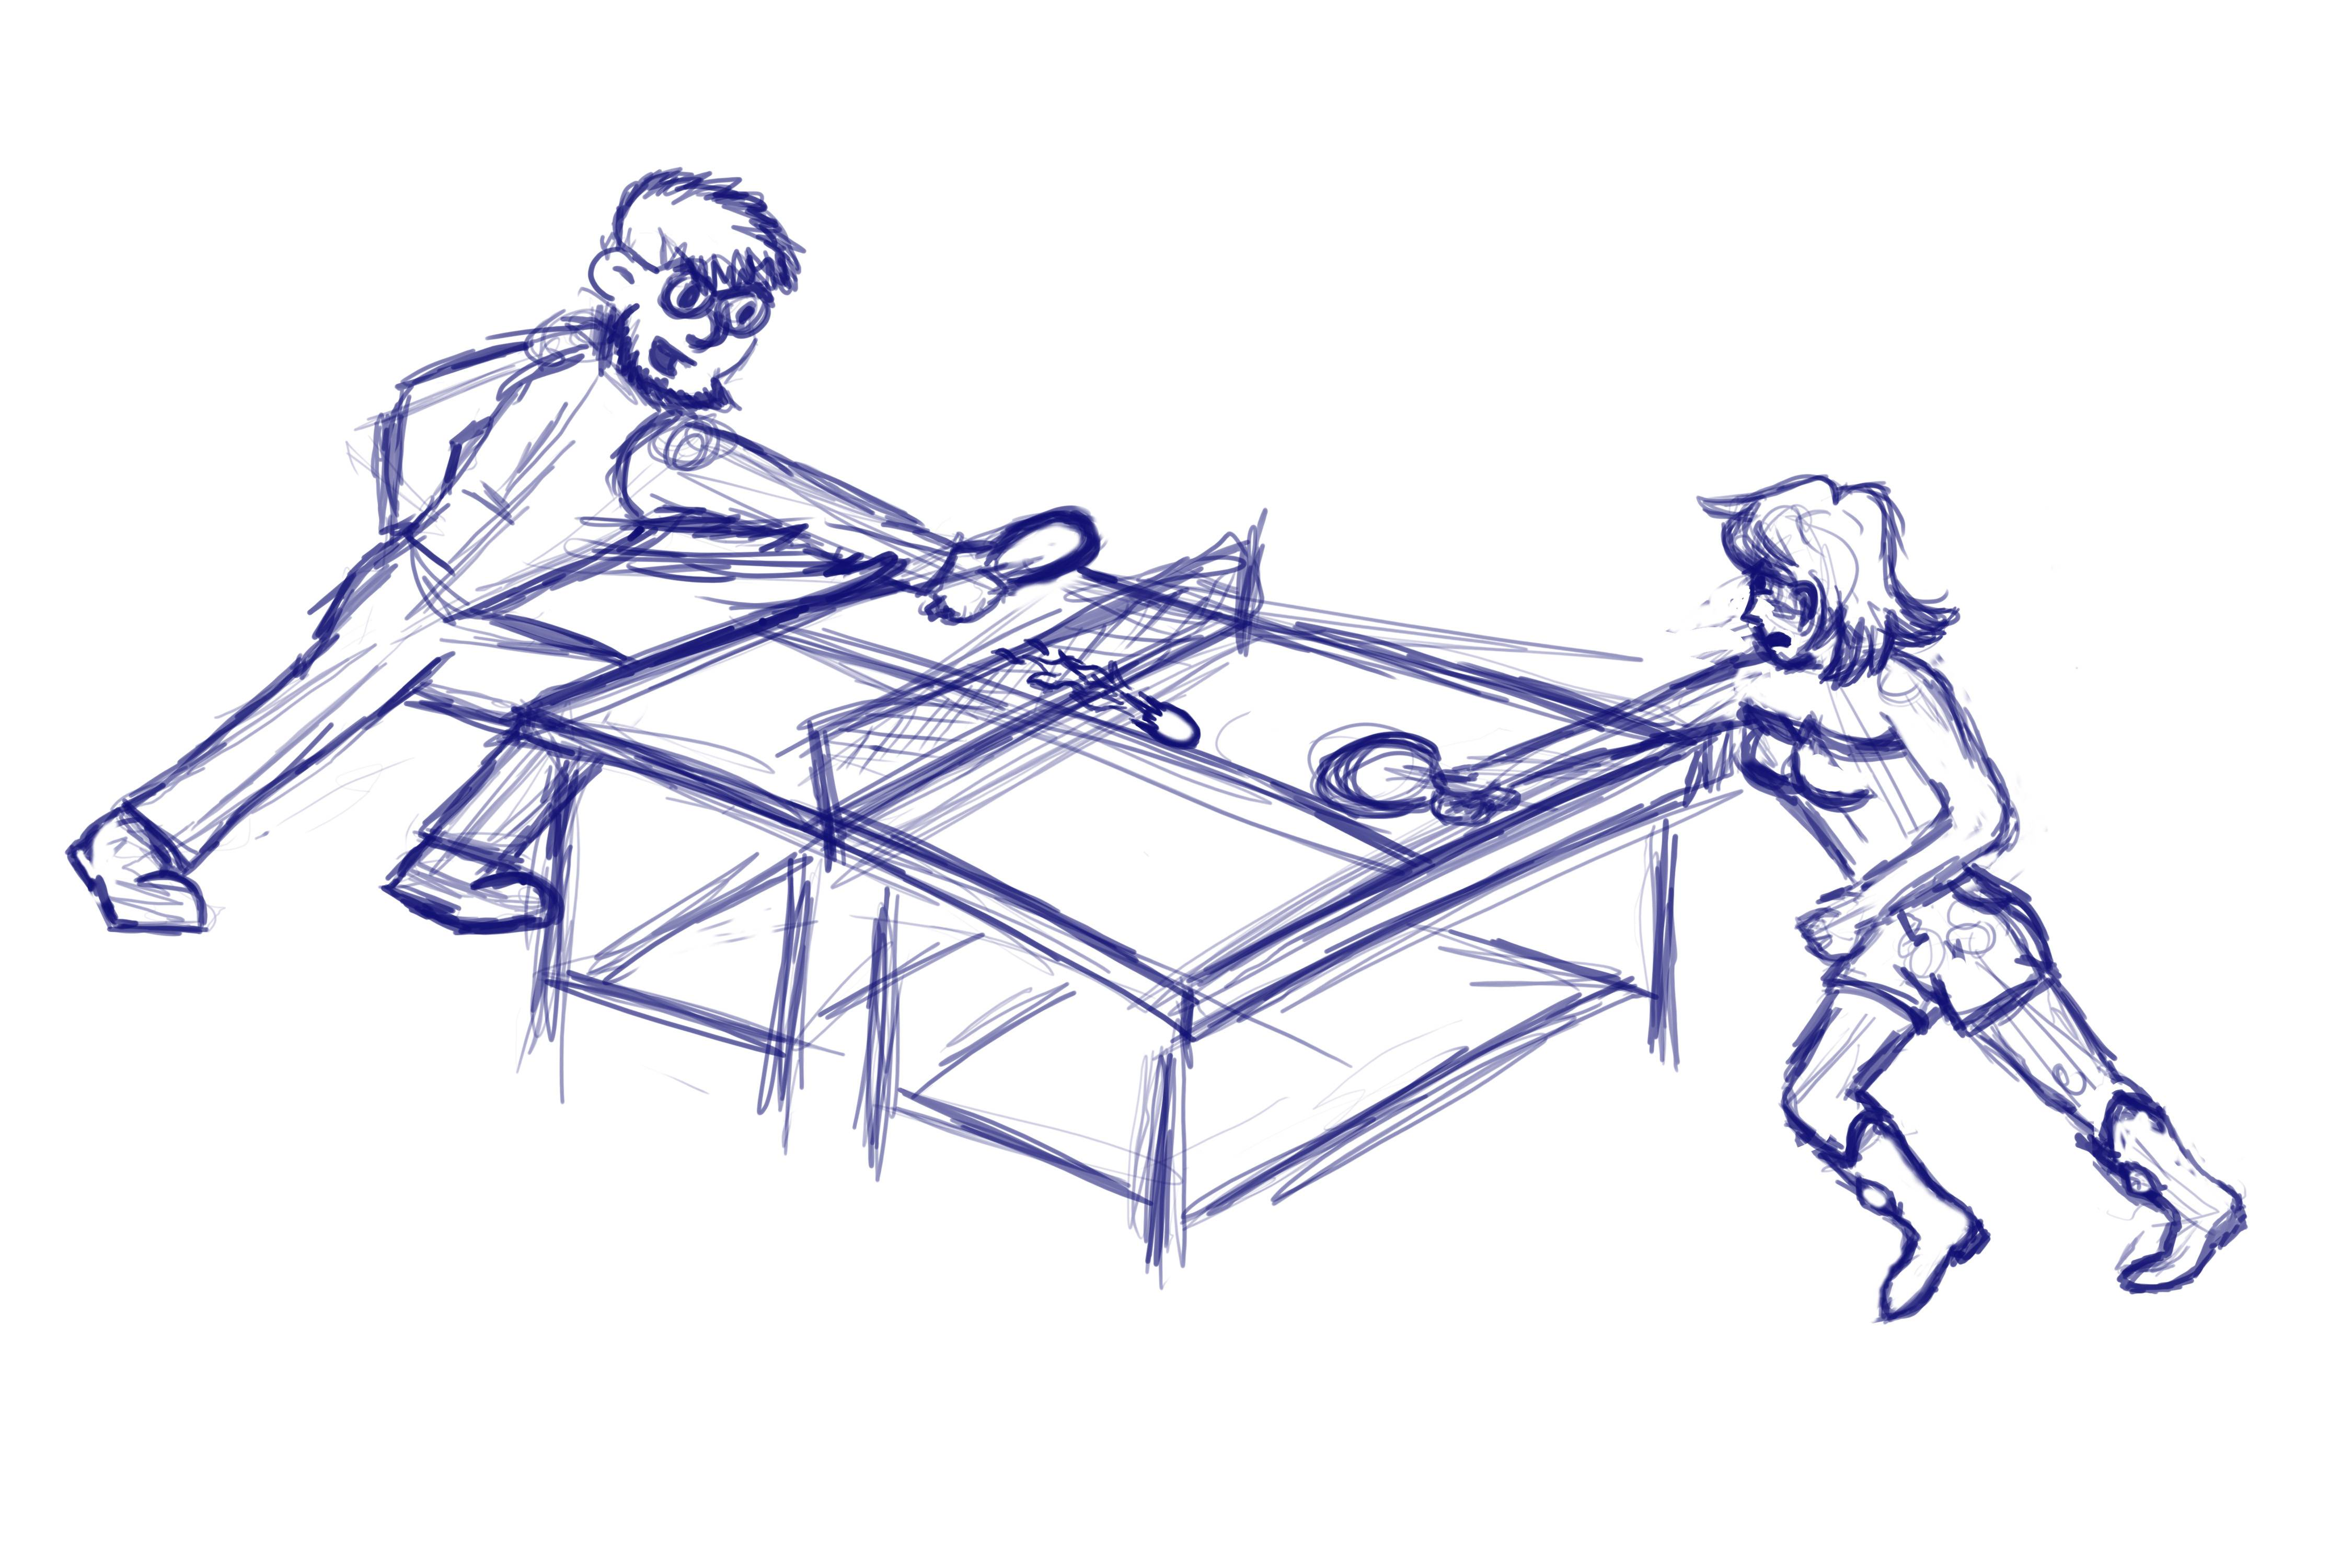 4500x3000 My Rough Sketch Of Nebris And Haru Playing The Ping Pong Mindcrack